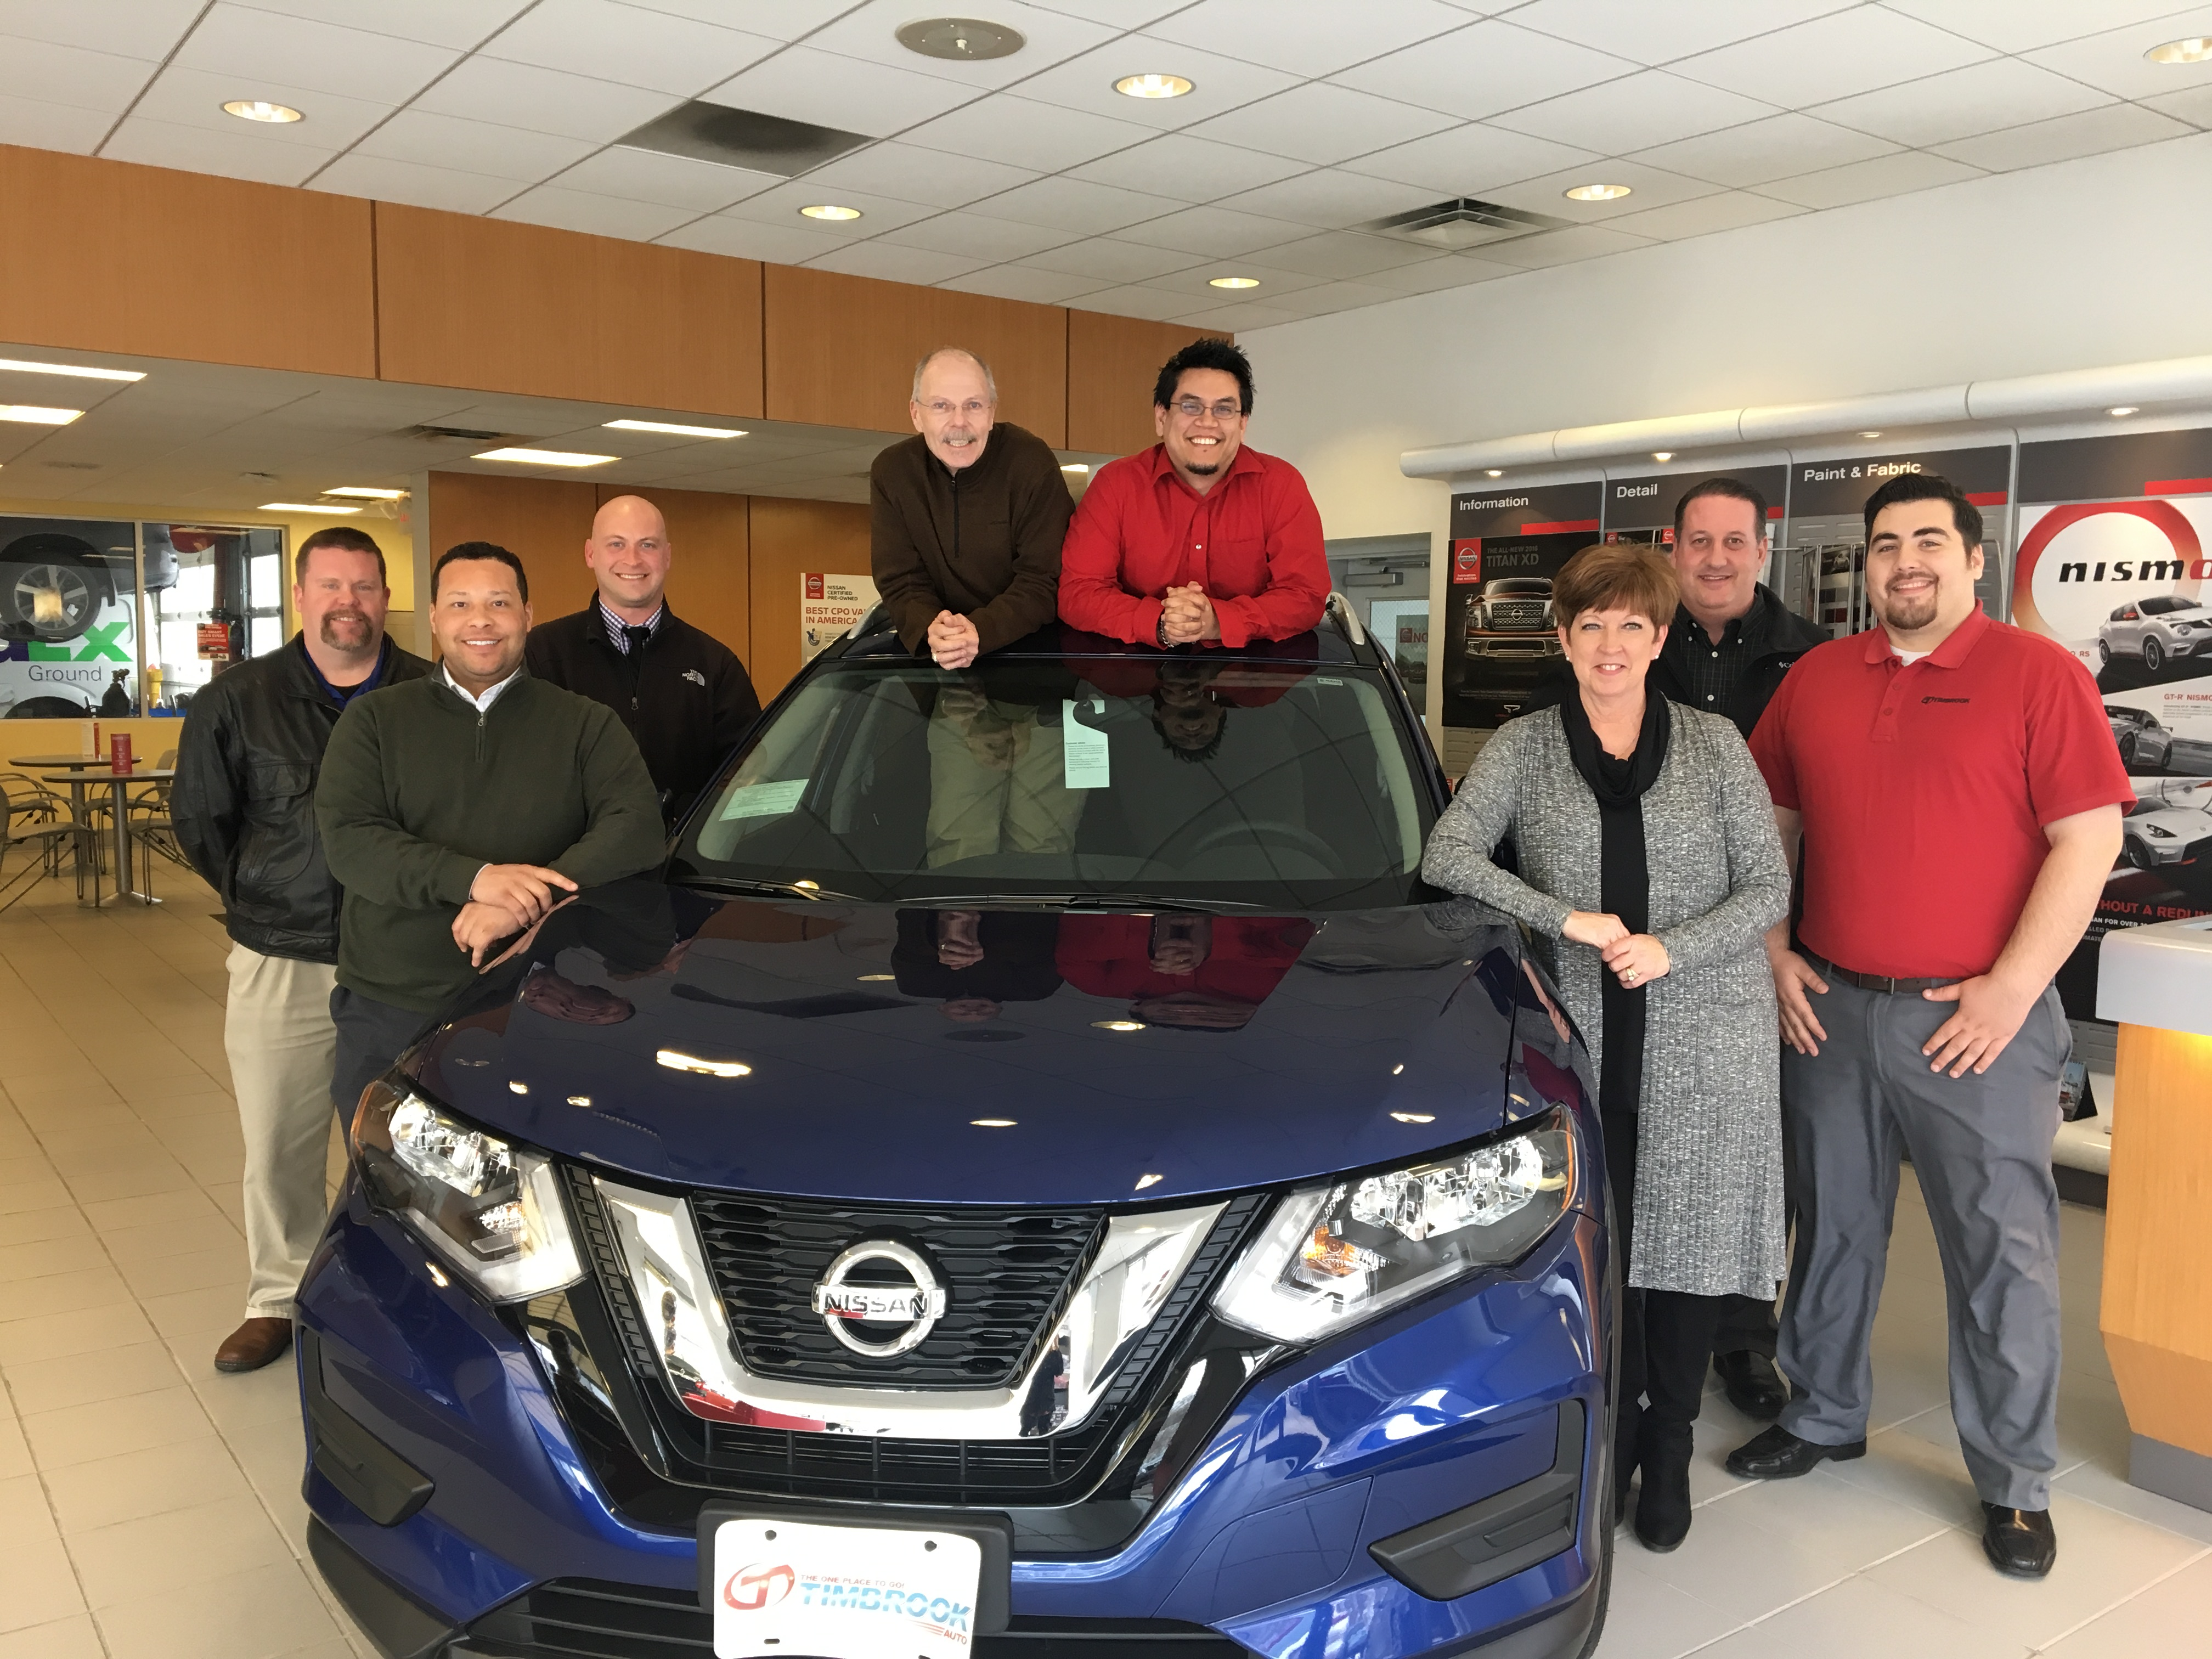 md hd image in lease wa sentra offers specials deals interior near dealers nissan int auburn new